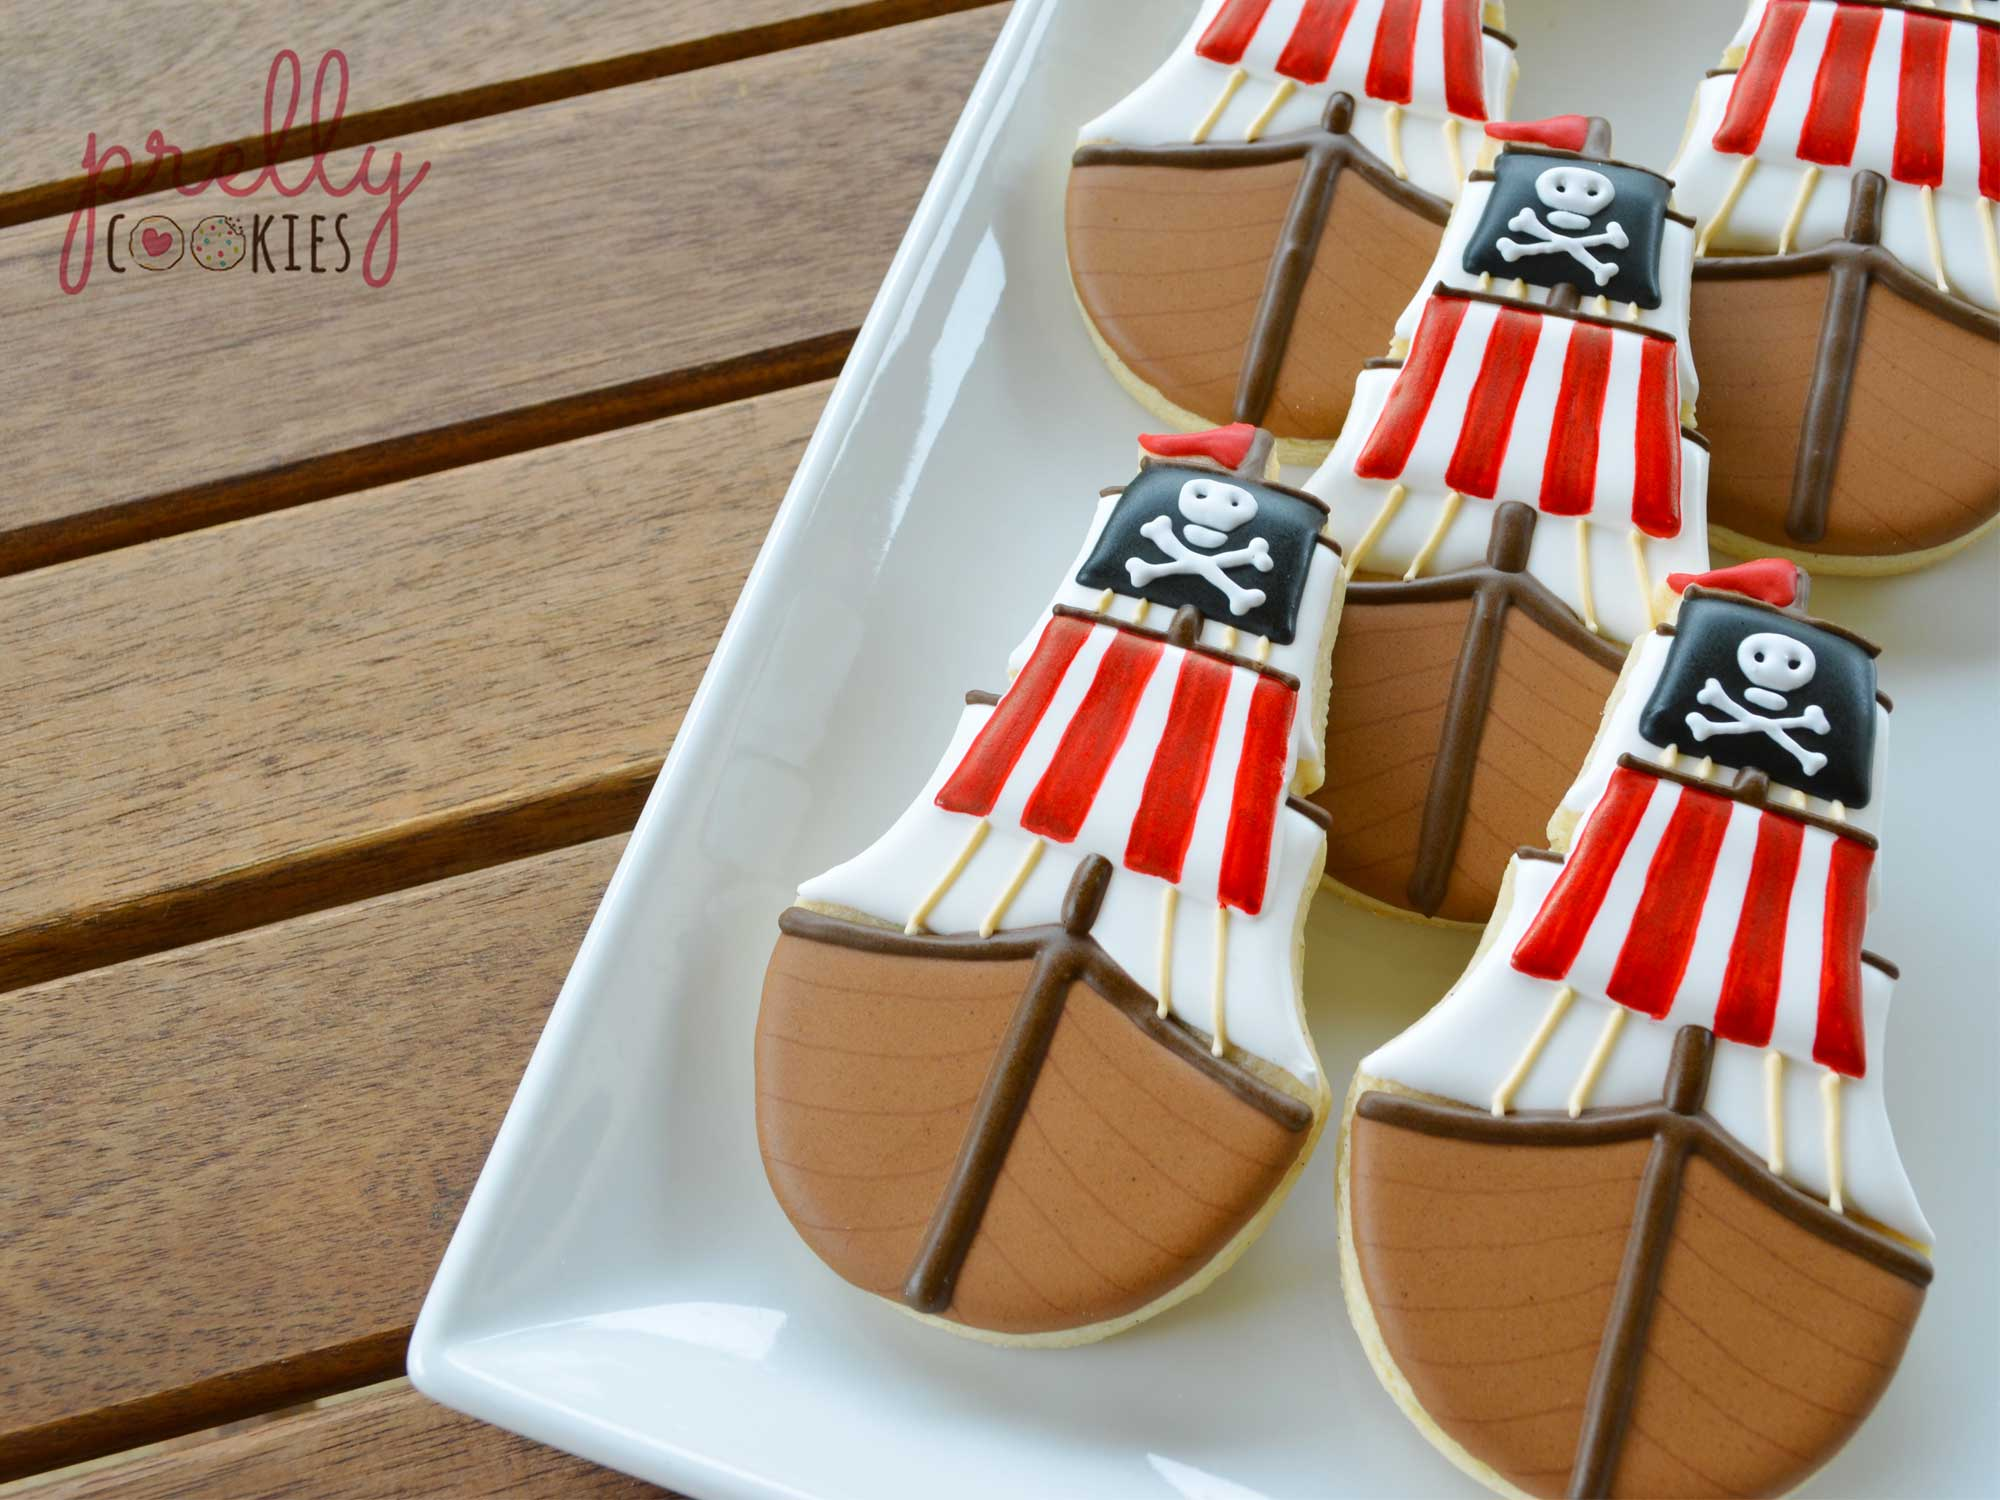 How to Decorate a Pirate Ship Cookie with Prelly Cookies [Guest Post]